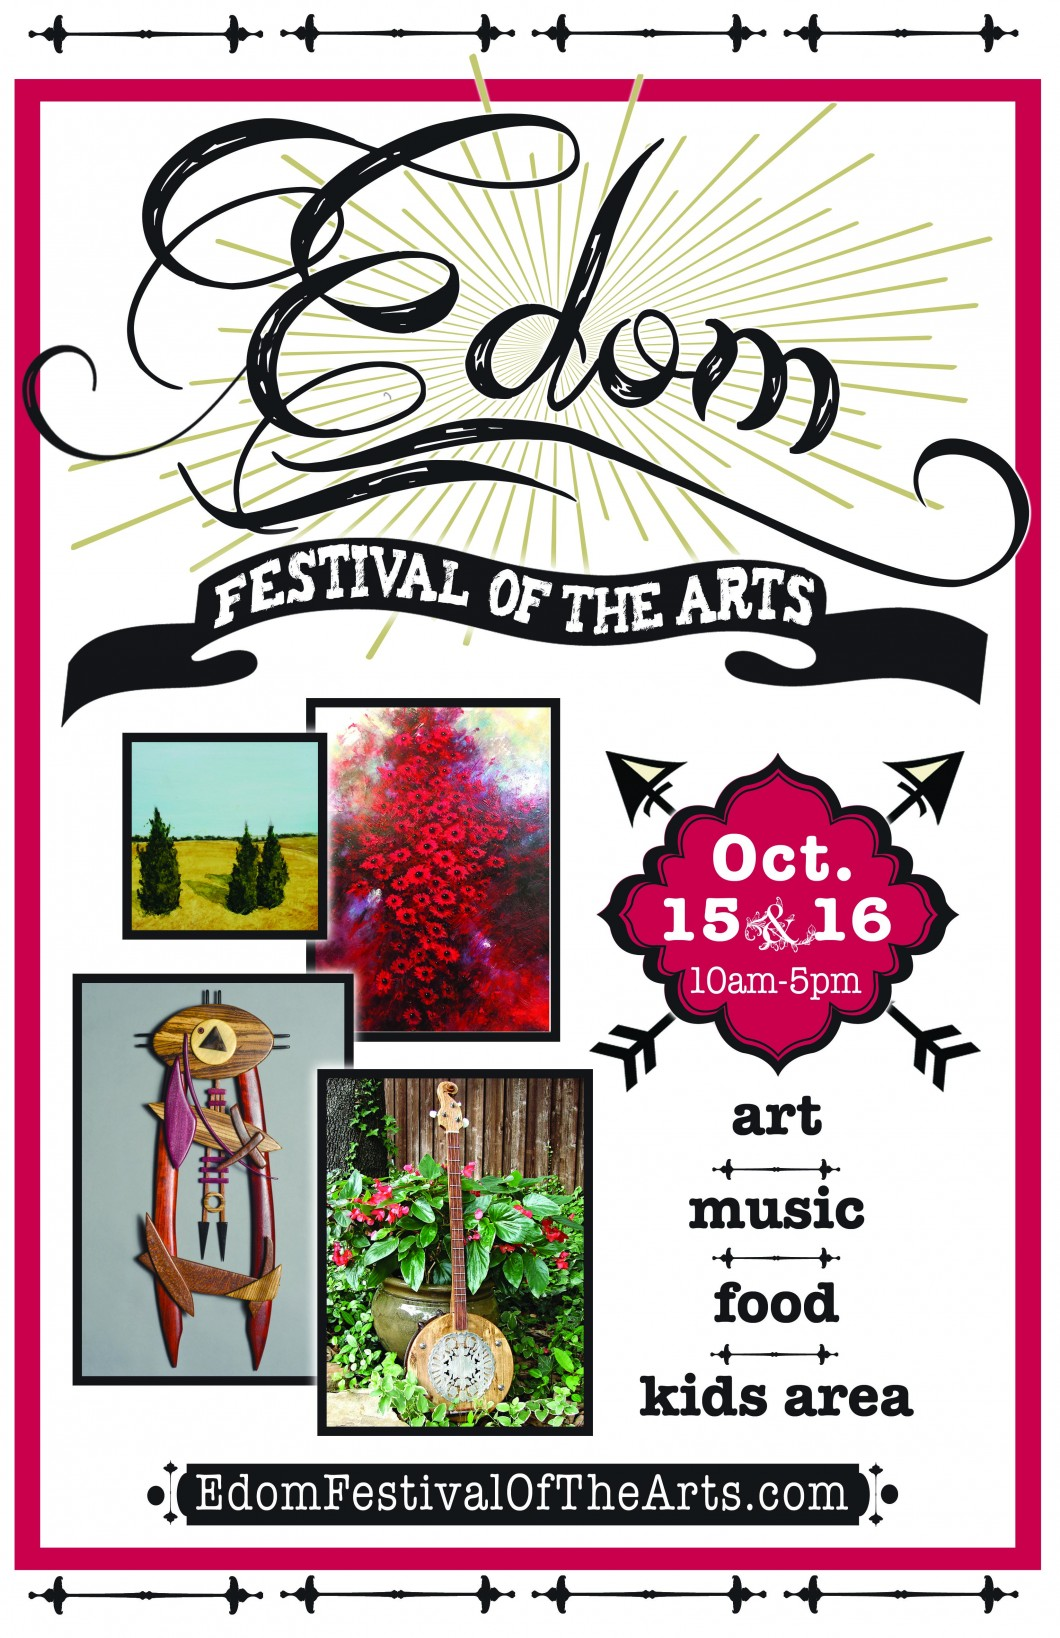 071216-Edom-Fest-of-the-Arts-Poster-11x17